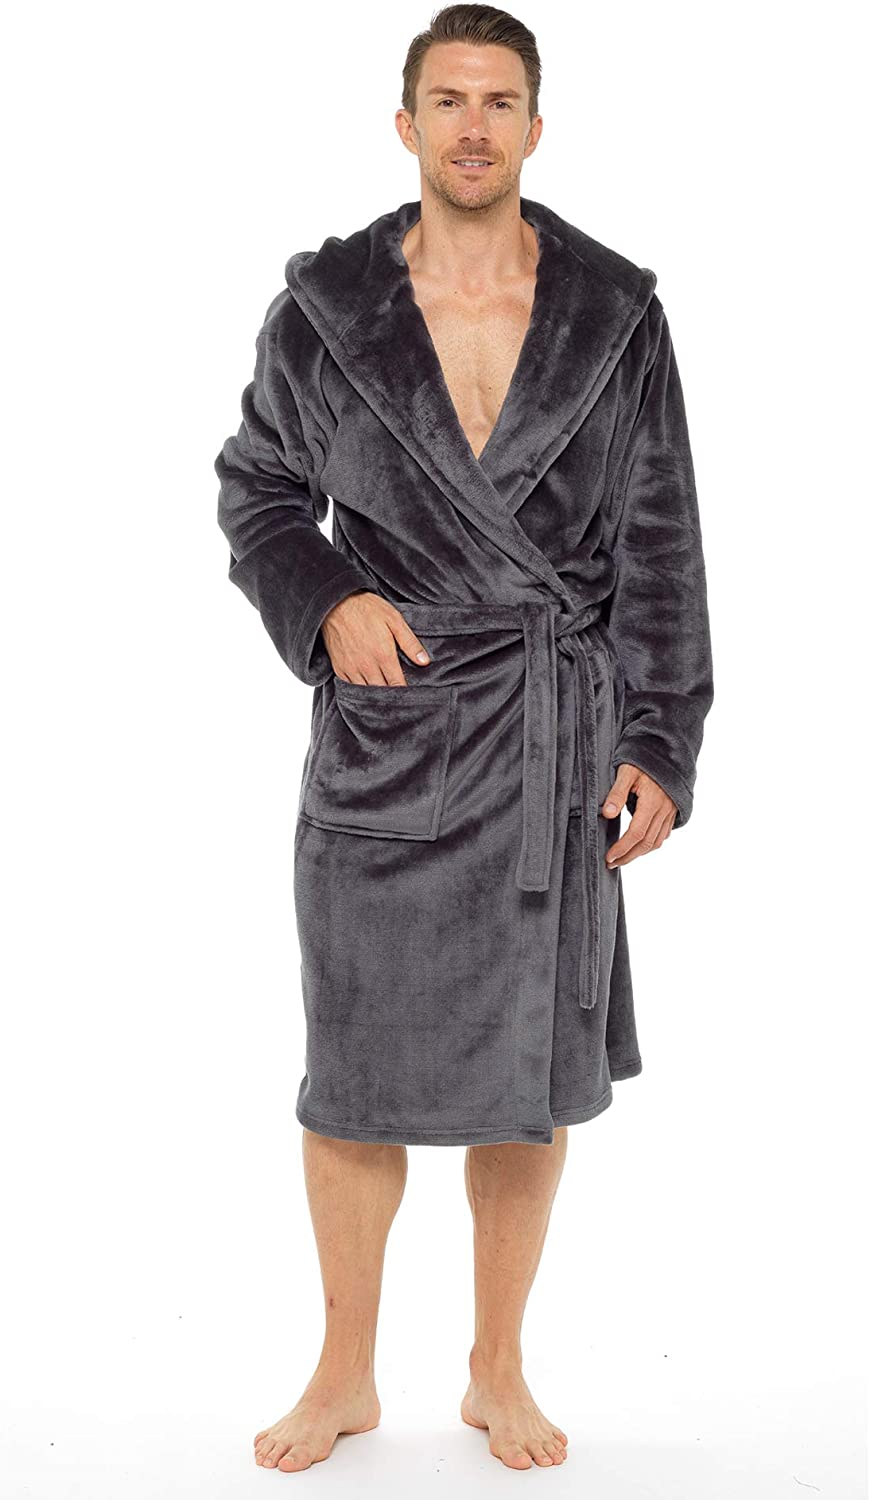 Mens Dressing Gown Super Soft Mens Fleece Robe with Hood Gowns Bathrobe Warm and Cozy/…